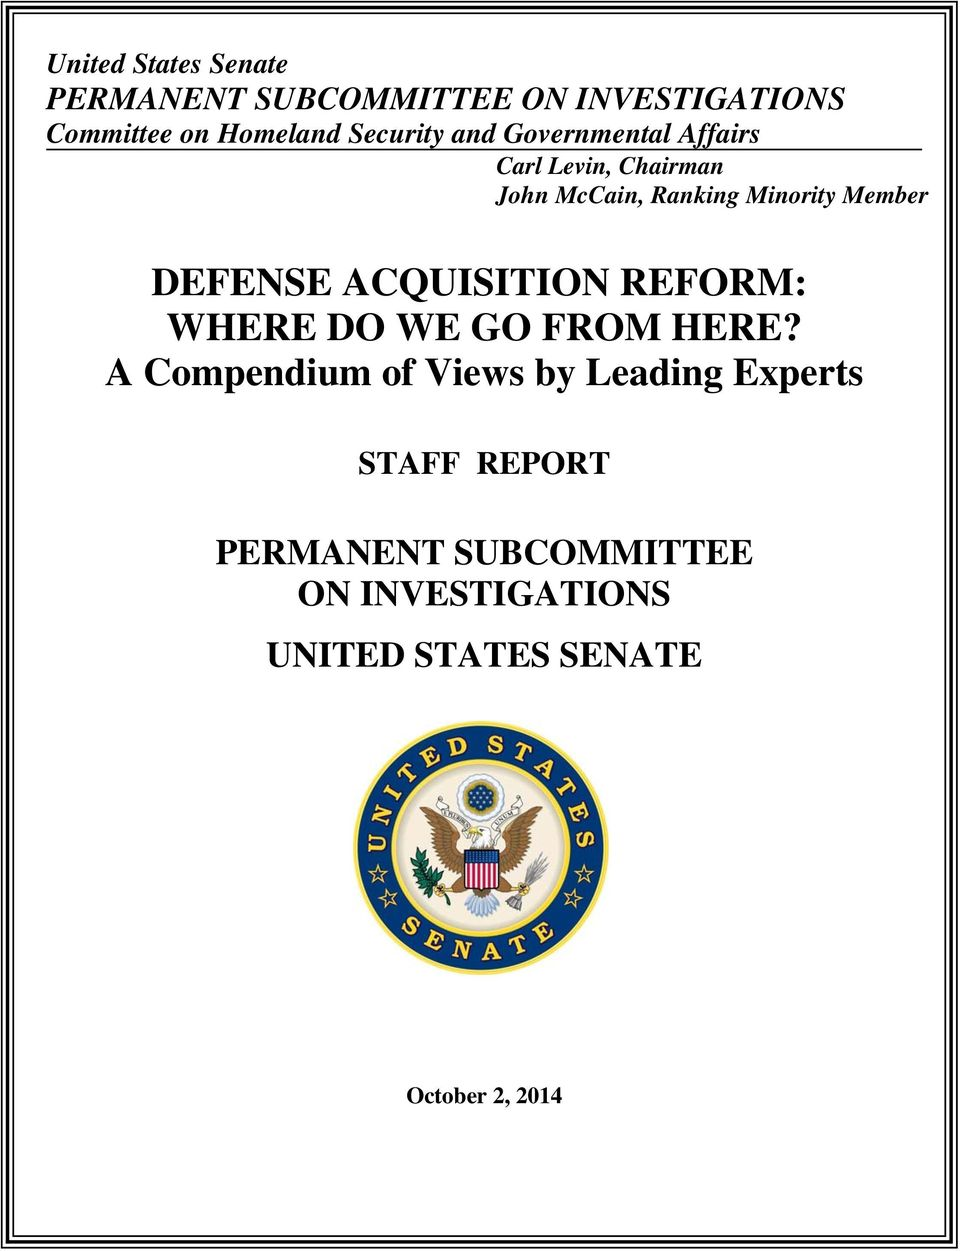 Member DEFENSE ACQUISITION REFORM: WHERE DO WE GO FROM HERE?